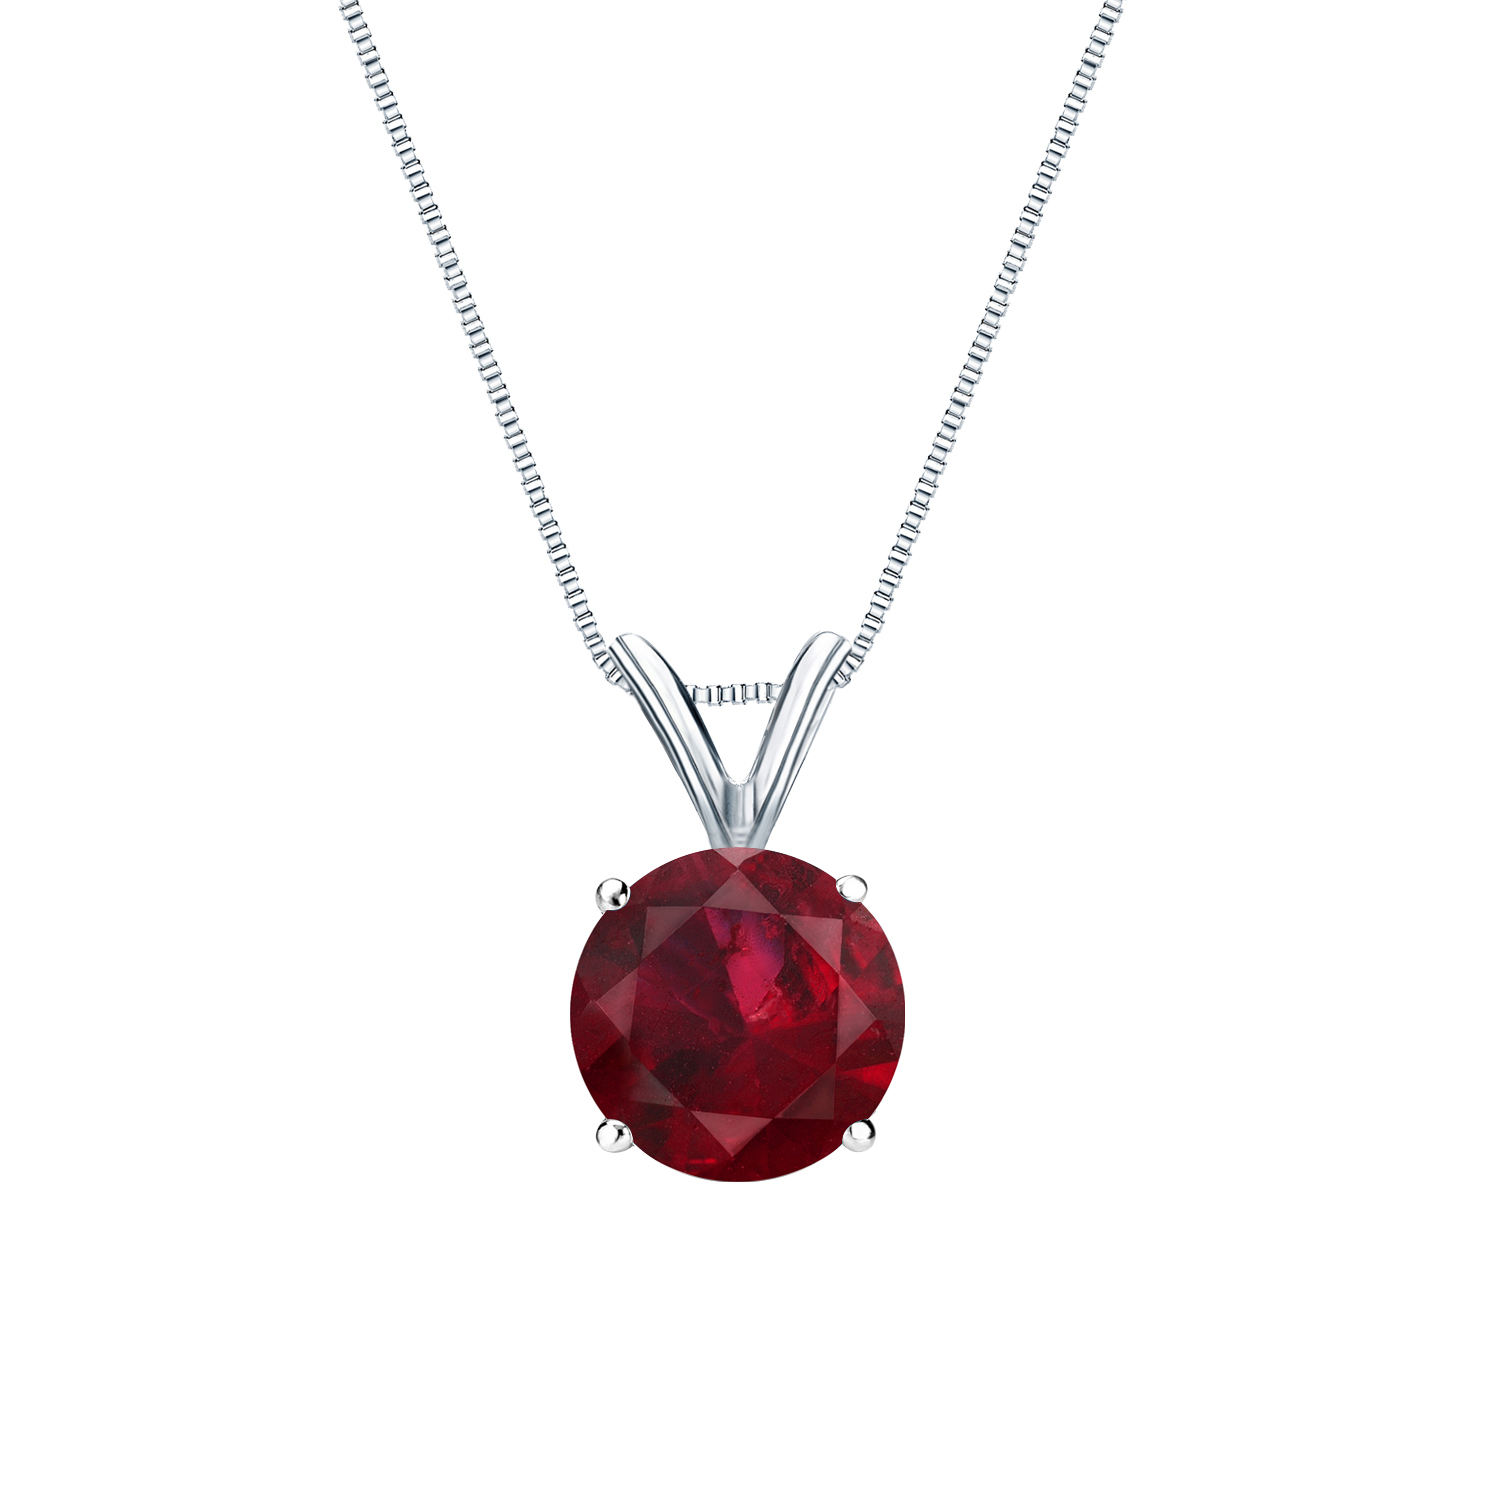 Certified 0.20 ct. tw. Round Ruby Gemstone Solitaire Pendant in 14k White Gold 4-Prong Basket (Red, AAA)